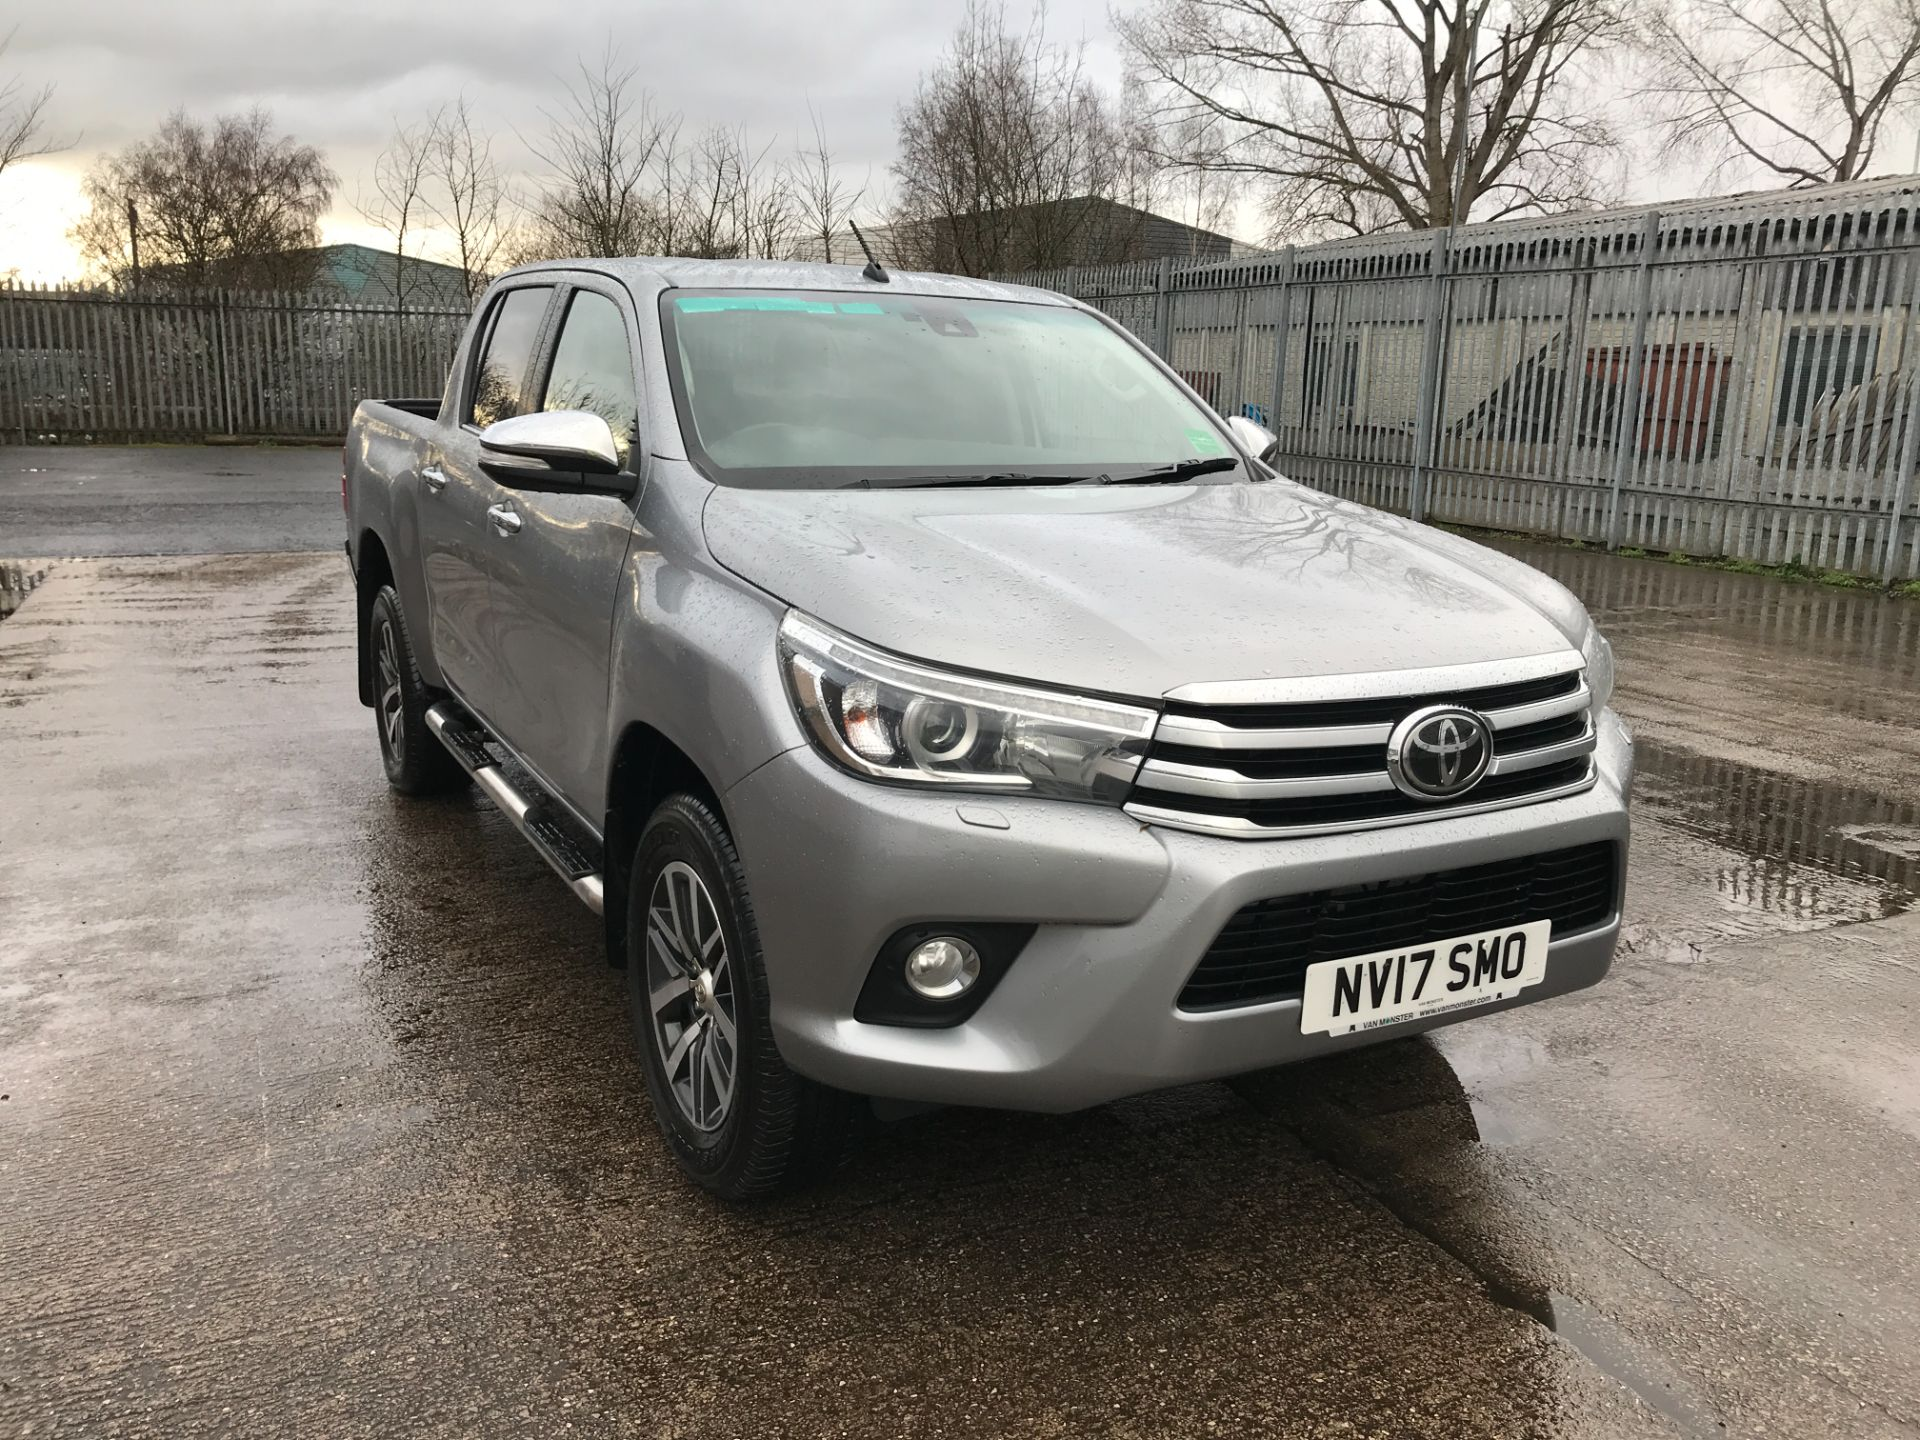 2017 Toyota Hilux  DOUBLE CAB 3.0D4D 4X4 171PS INVINCIBLE EURO 5 (NV17SMO)